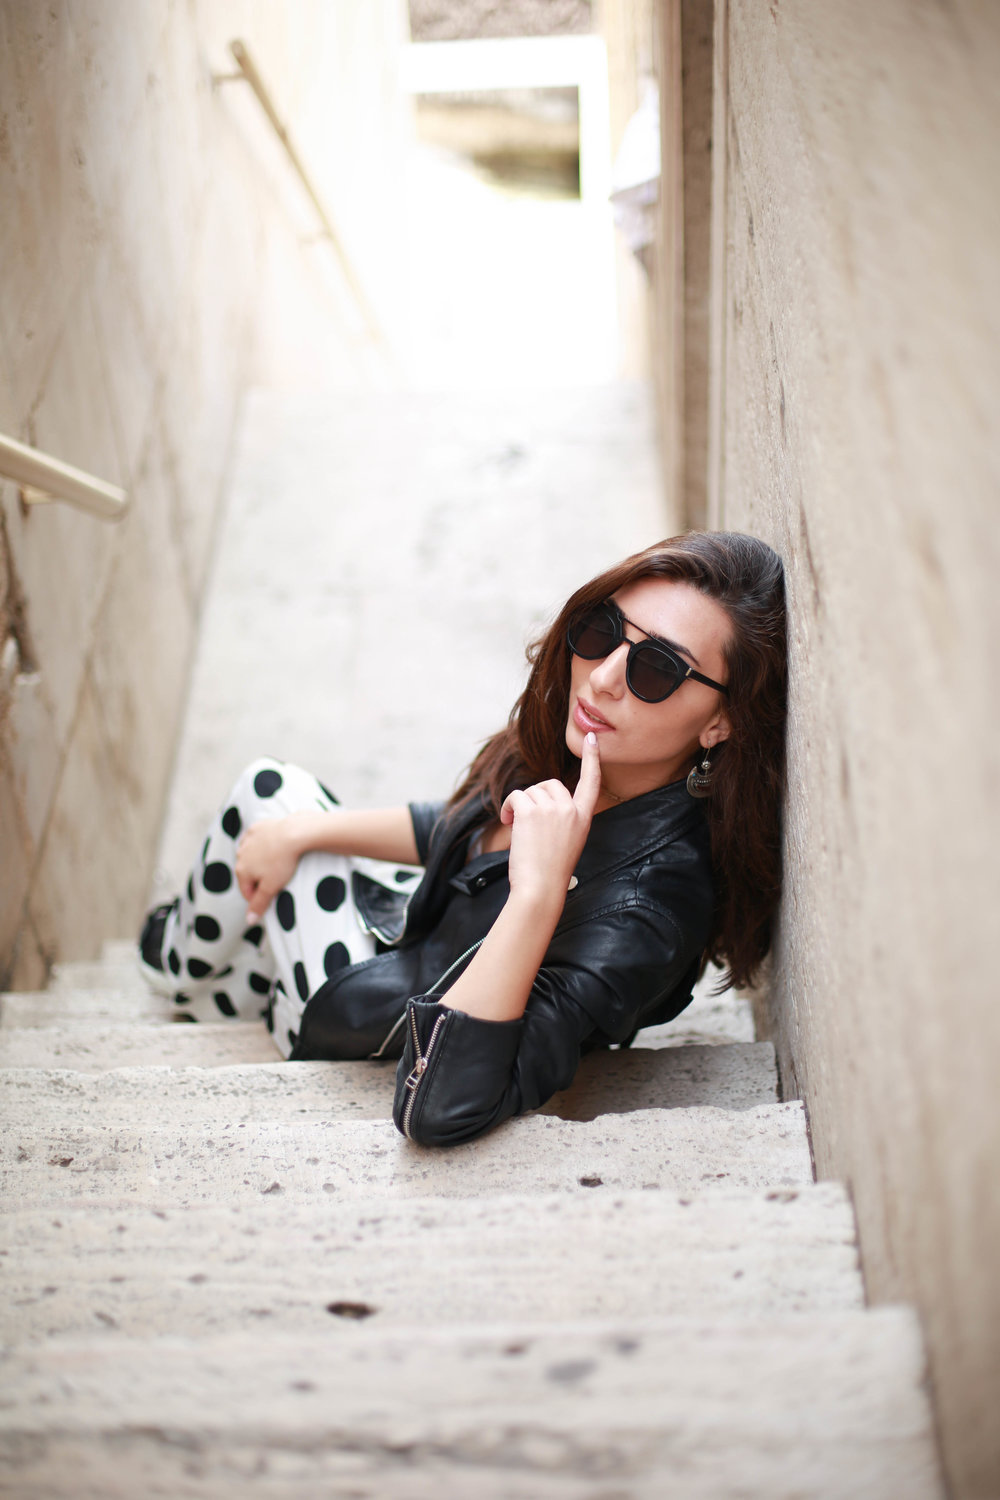 Polka dot skirt and black jacket portrait